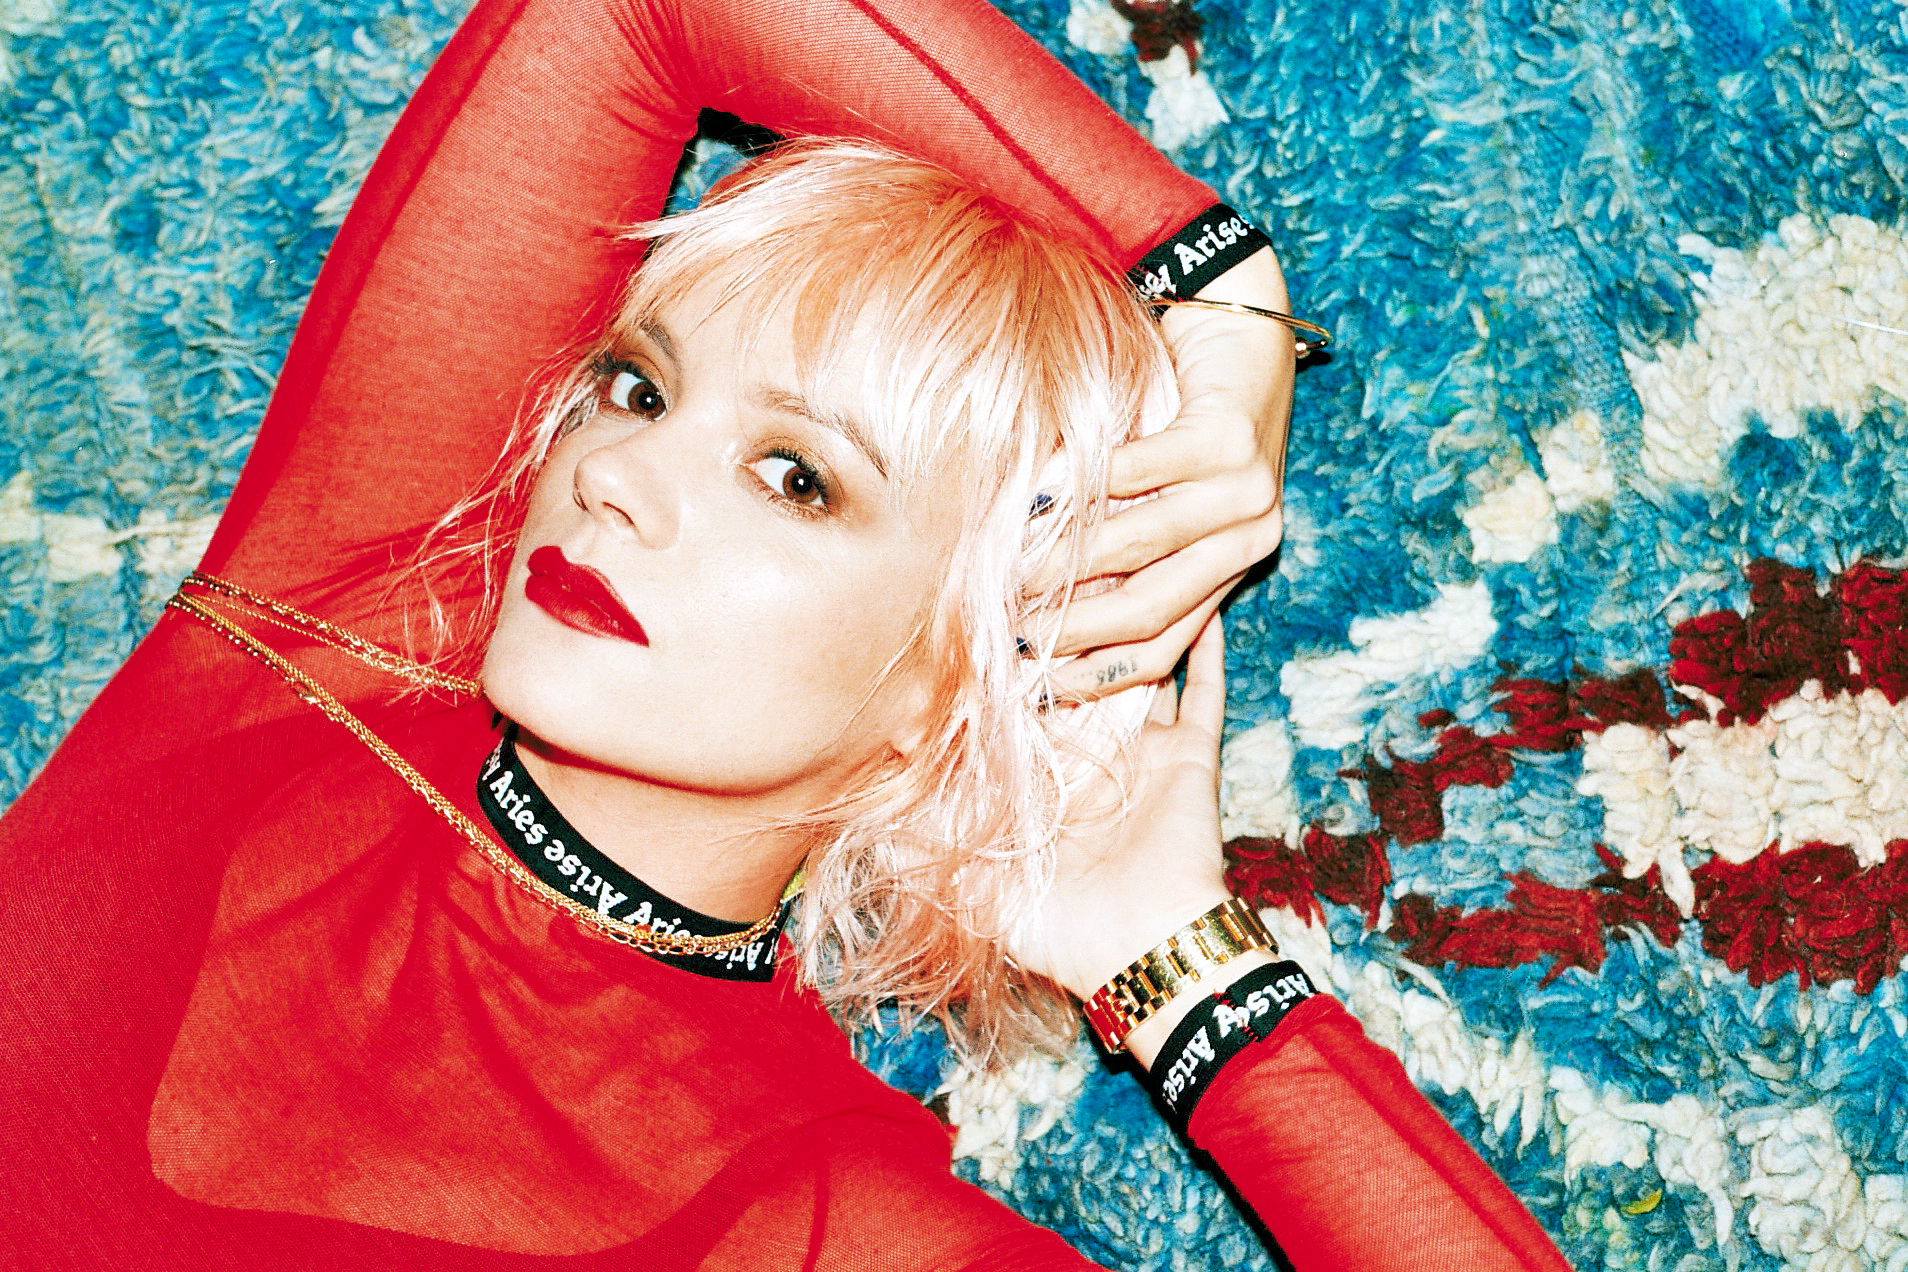 Lily Allen wearing a red top in press shot